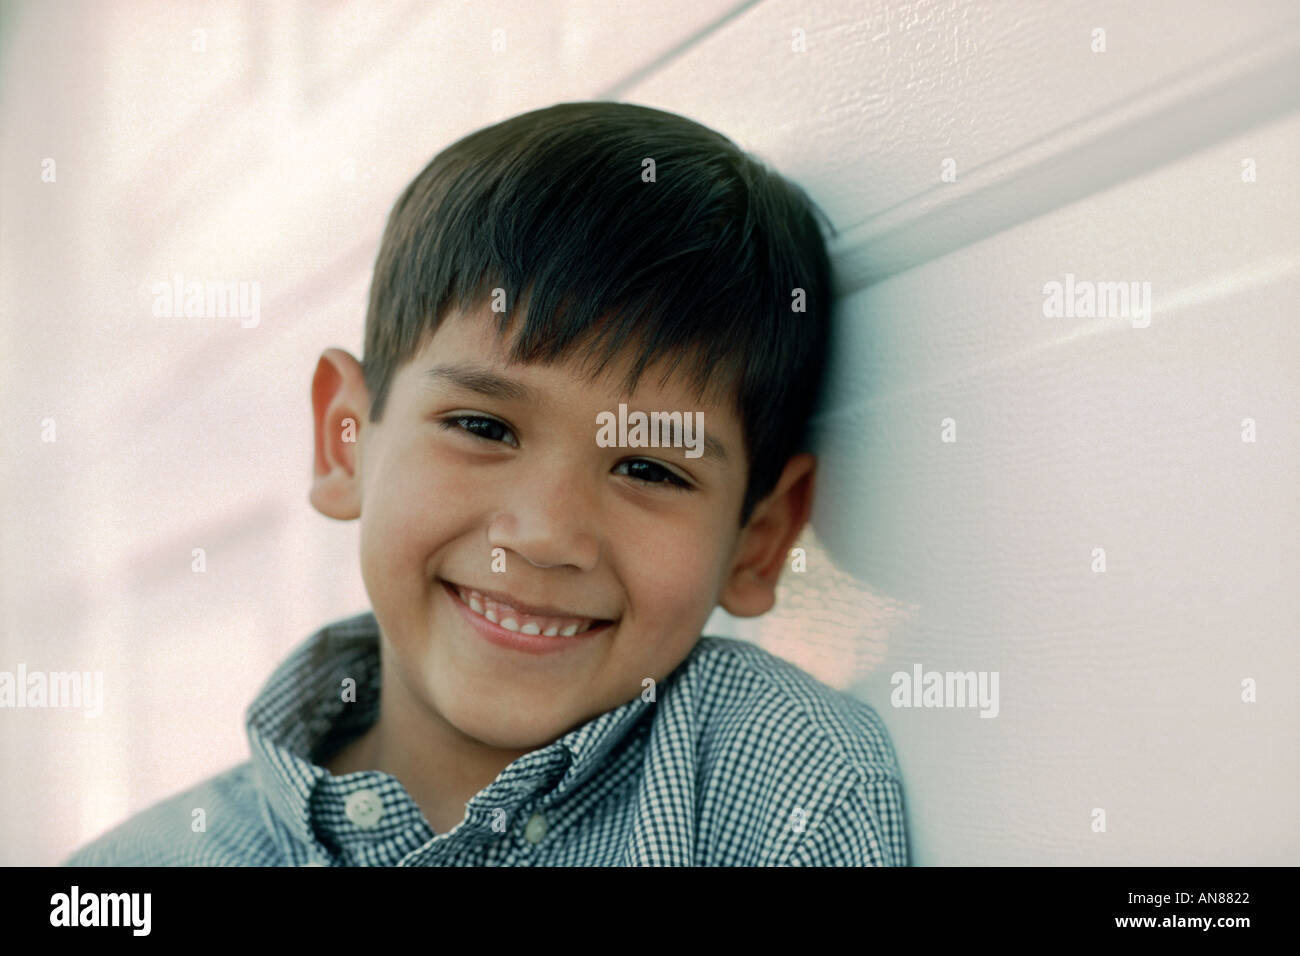 Portrait of 6 year old Mexican American leaning against white wall - Stock Image